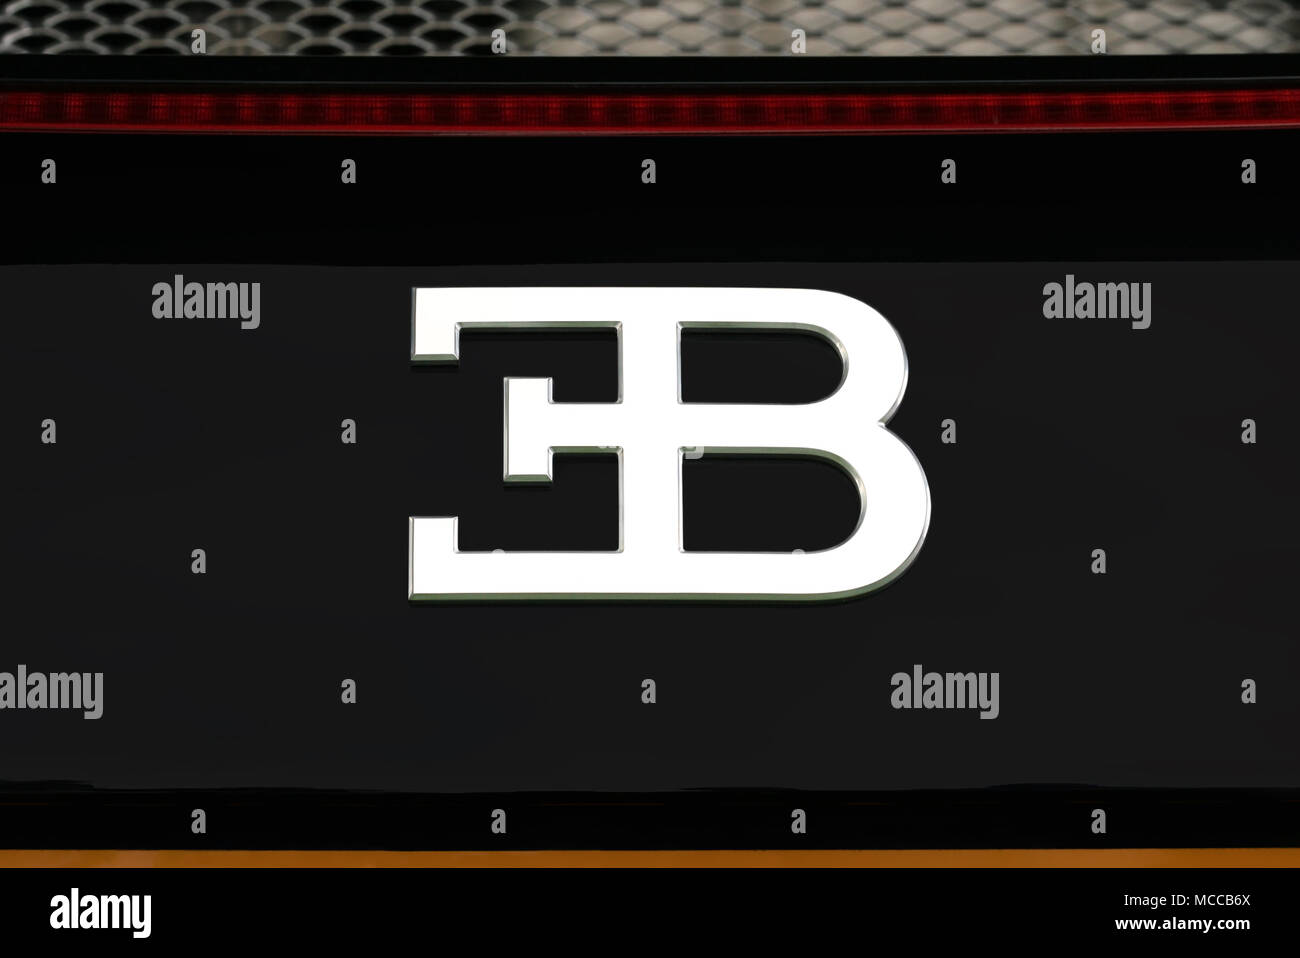 Closeup detail of a bugatti logo badge and branding on a black closeup detail of a bugatti logo badge and branding on a black bugatti veyron voltagebd Image collections